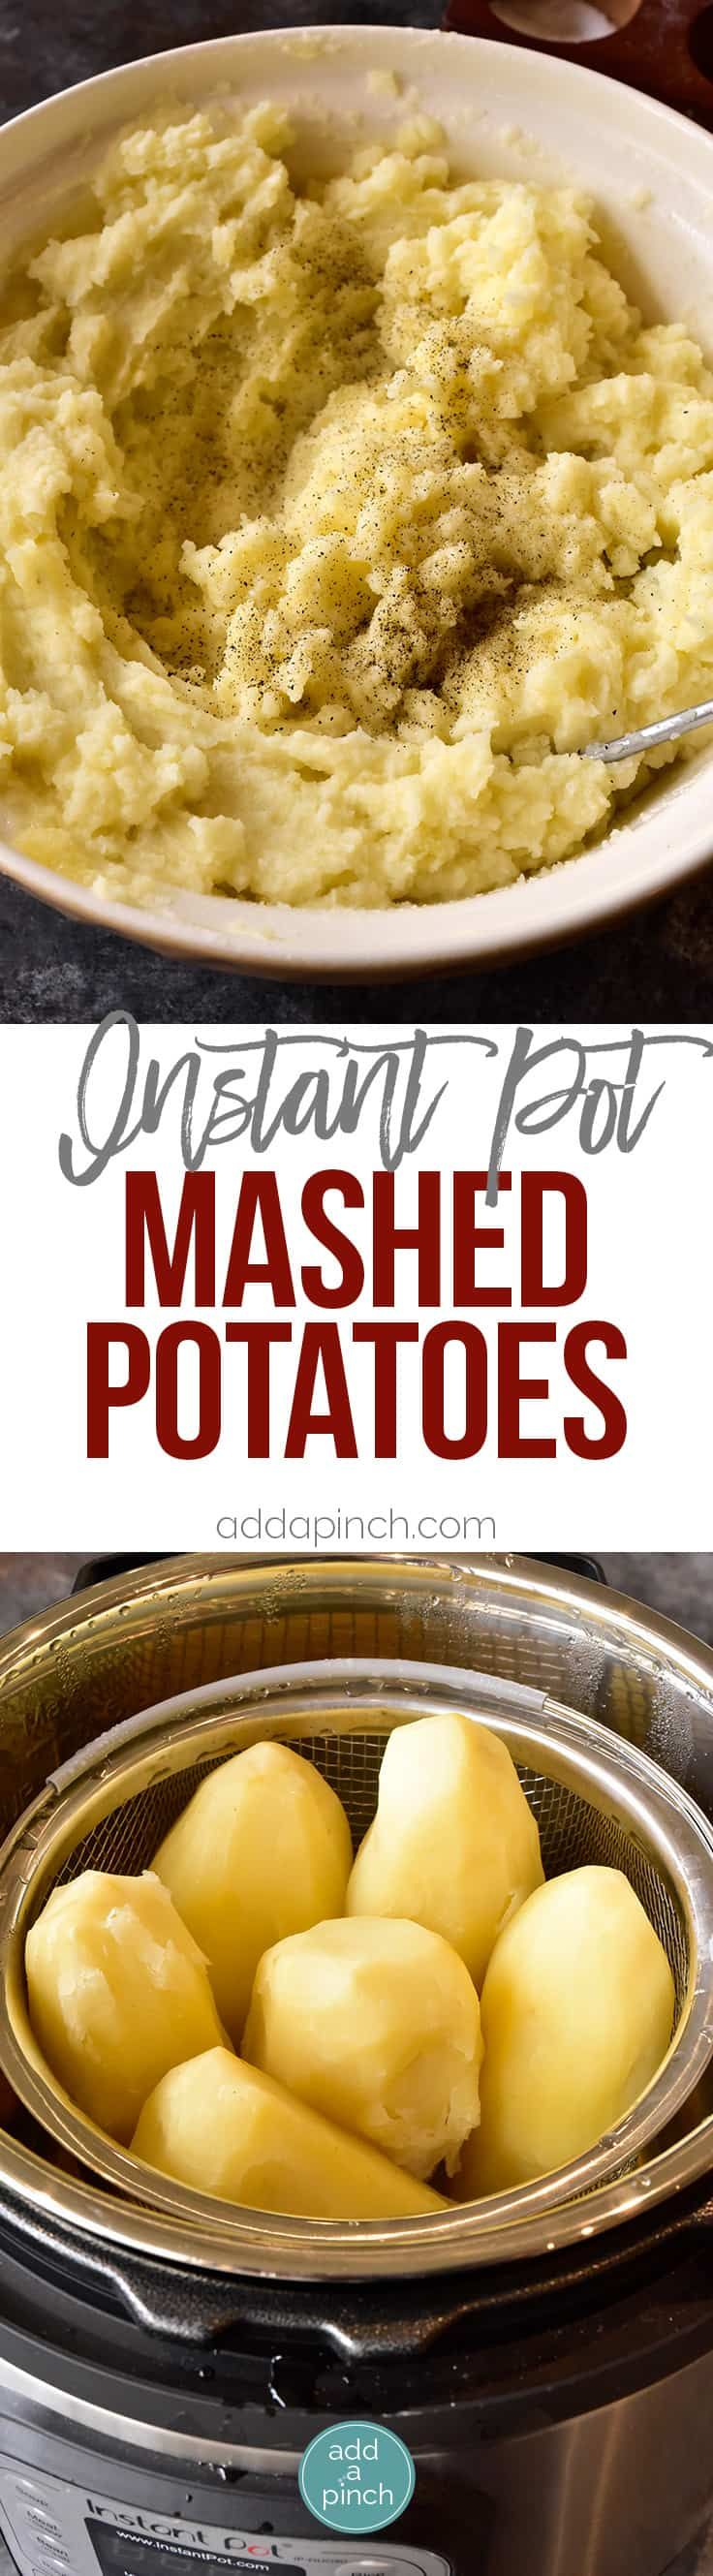 Instant Pot Mashed Potatoes - The Instant Pot pressure cooker makes for quick and easy, perfect mashed potatoes every time! // addapinch.com